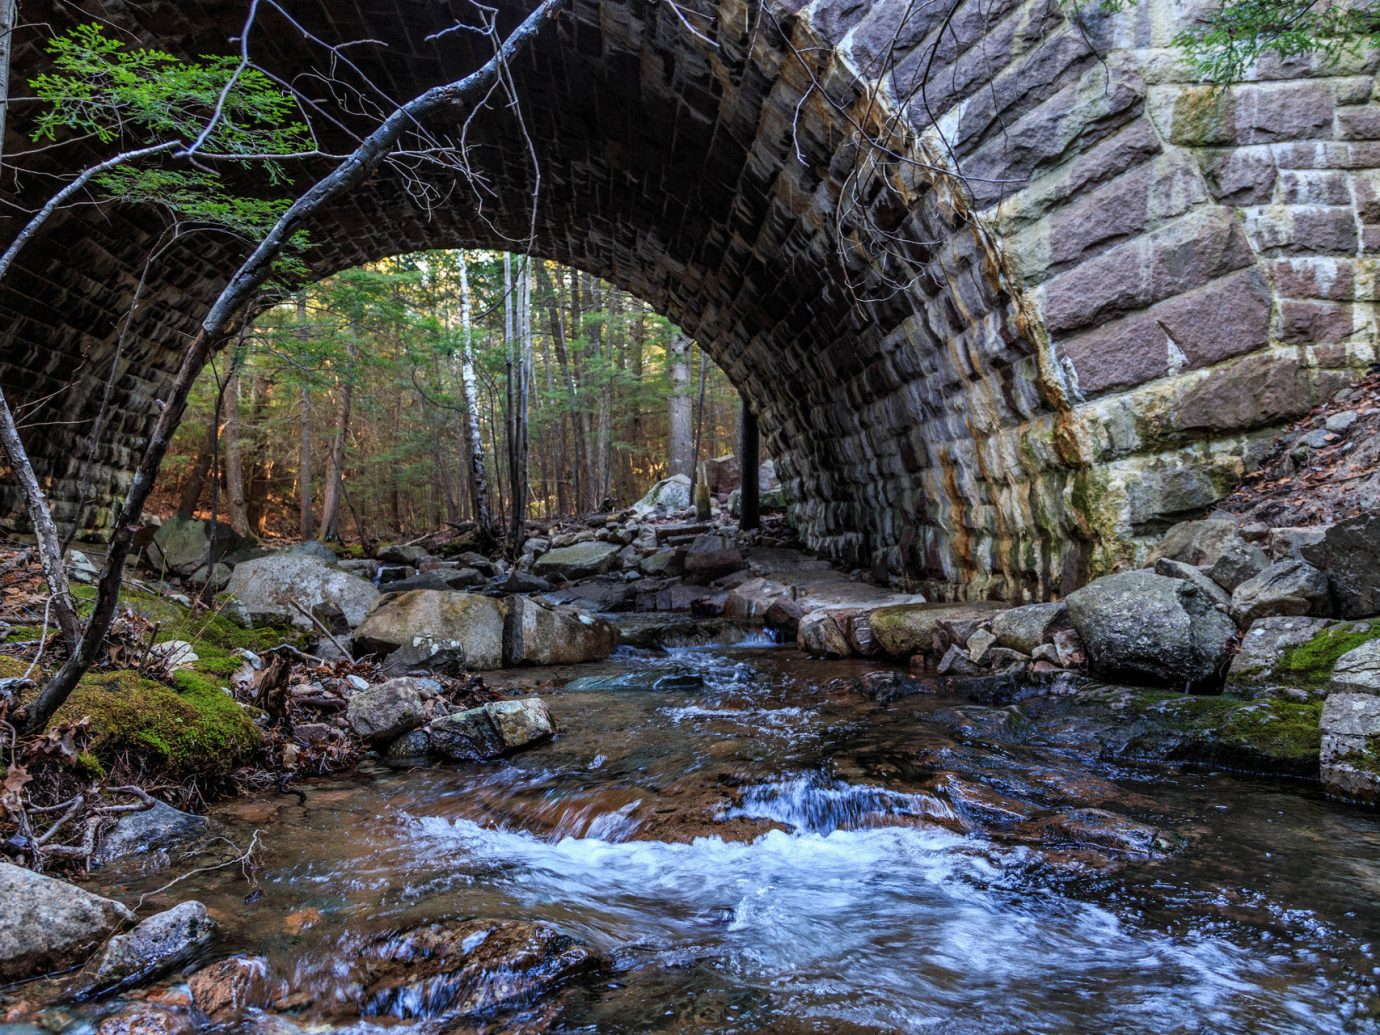 Beach brick wall bridge Forest moss National Parks Natural wonders Nature ripple River Road Trips Rocks stream Trip Ideas Waterfall woods outdoor rock water building stone arch water feature autumn